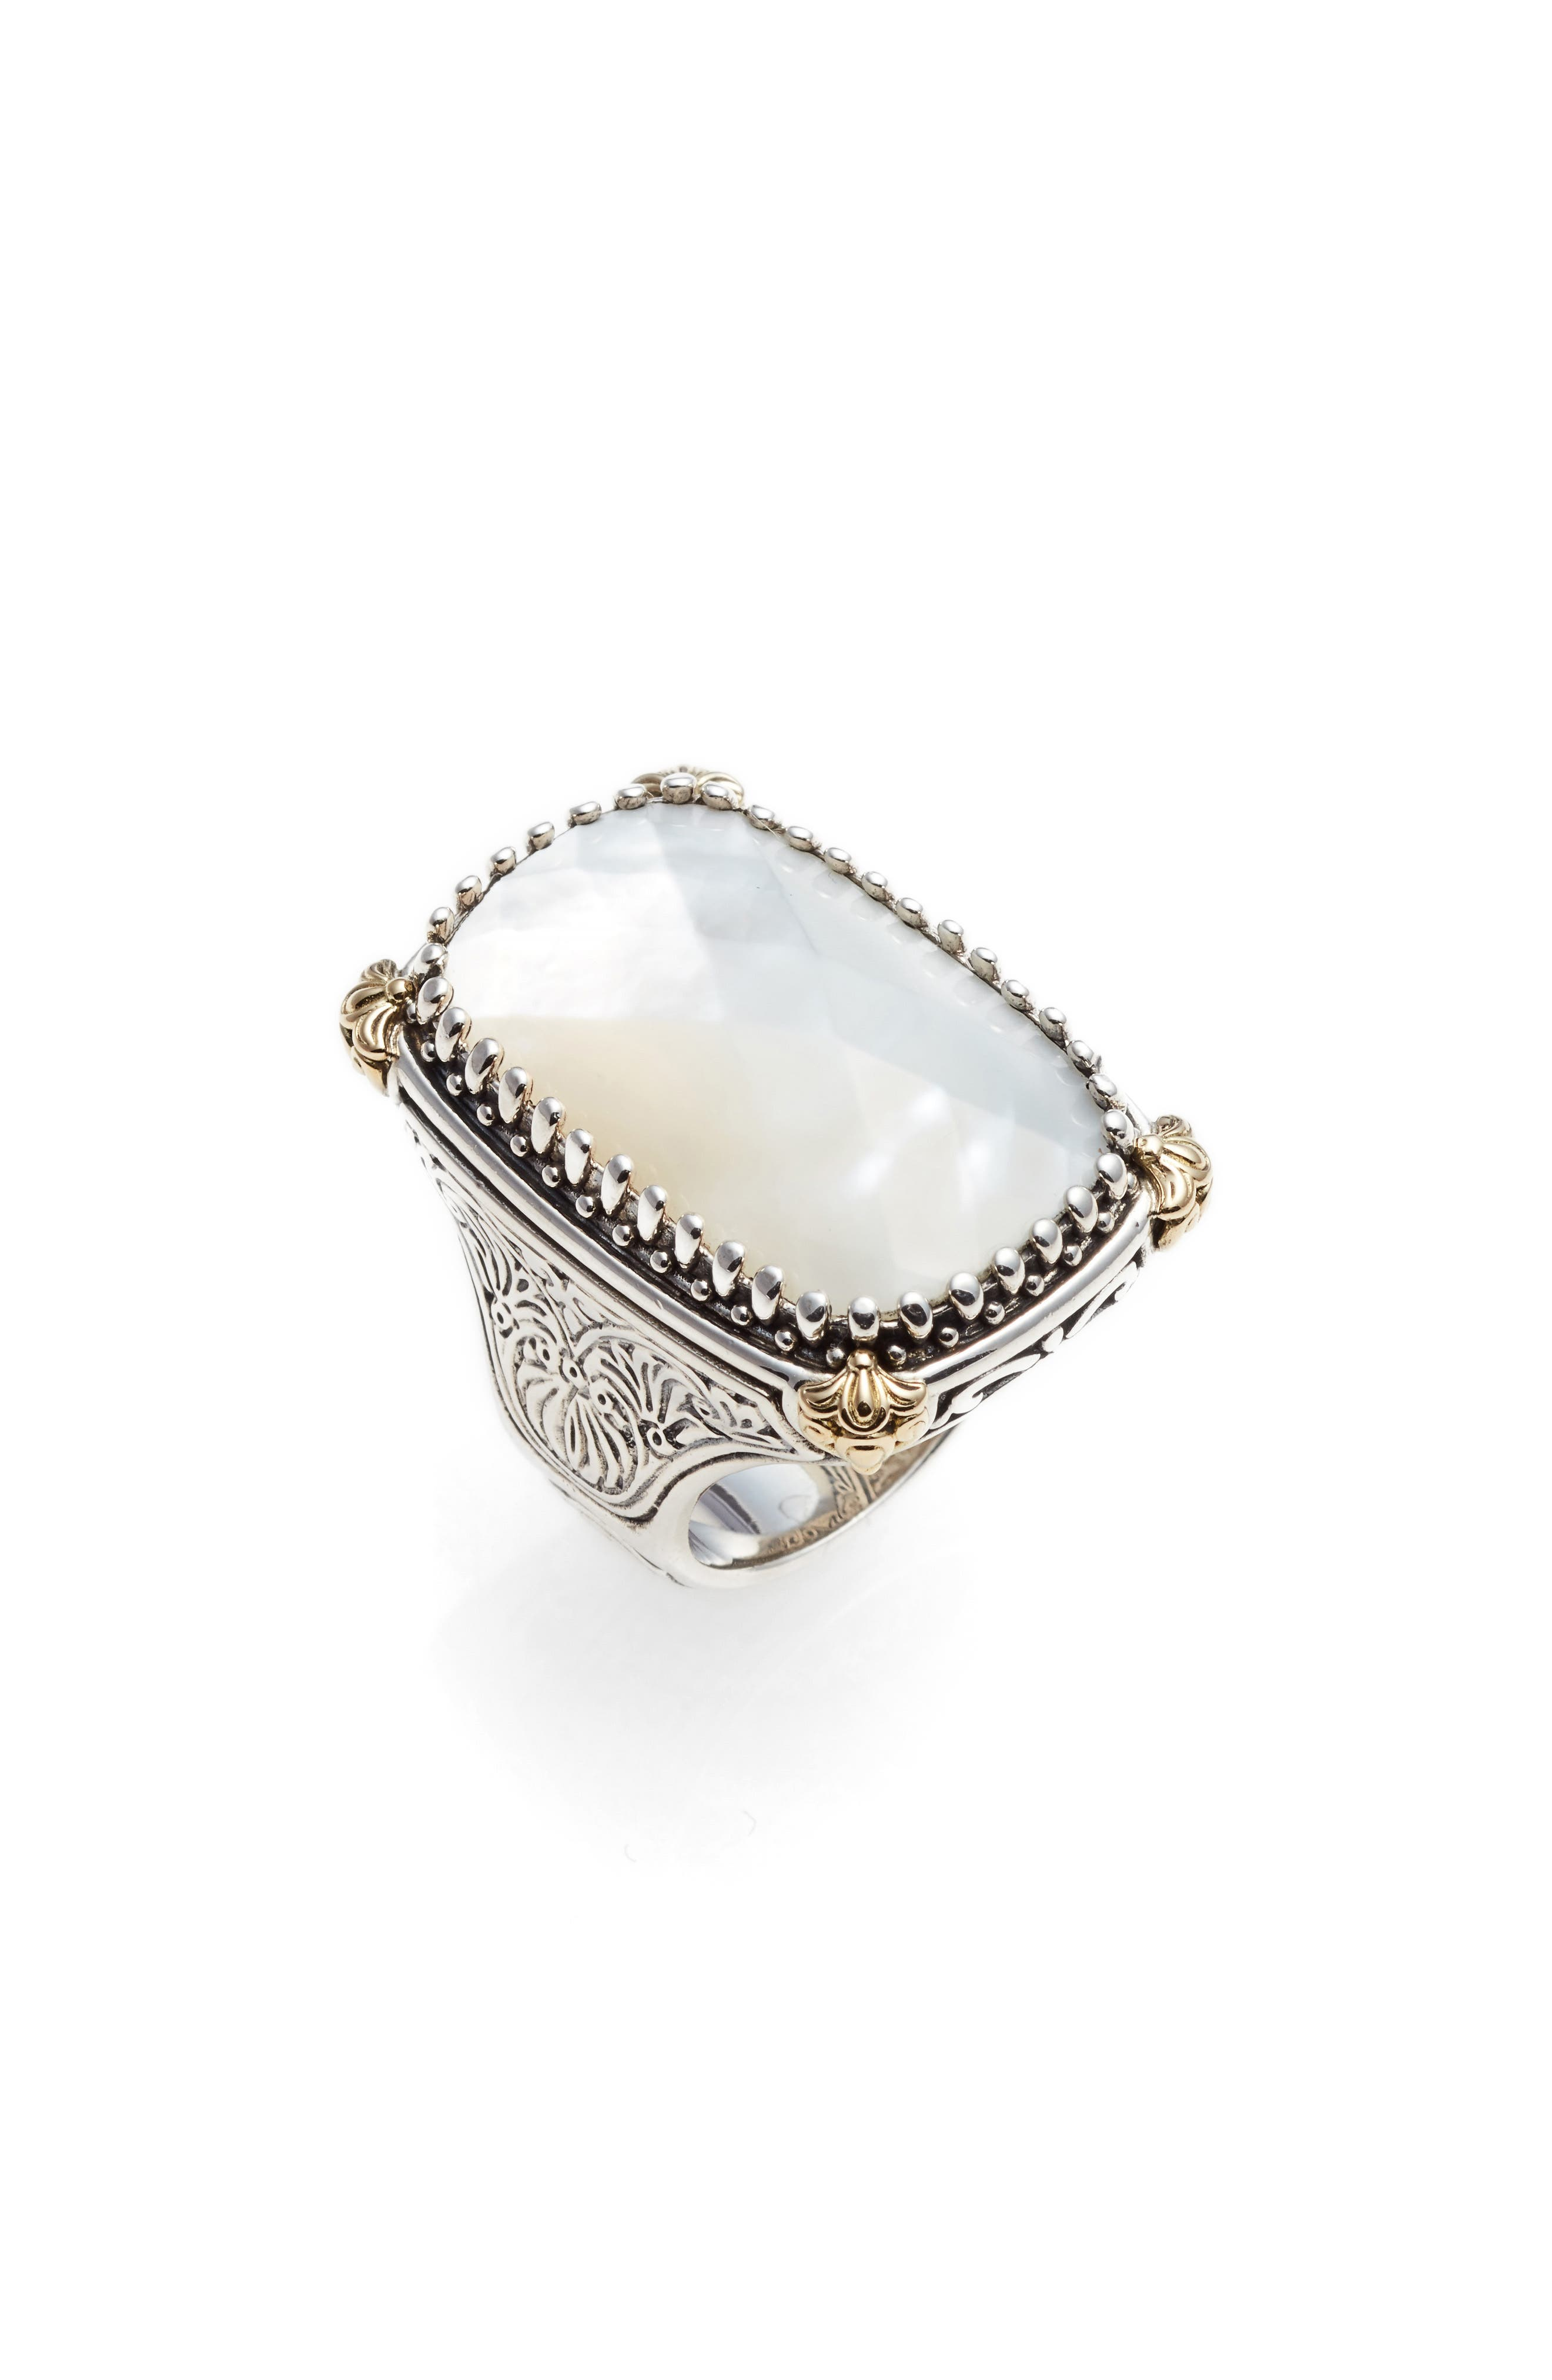 Selene Mother of Pearl Ring,                             Main thumbnail 1, color,                             Silver/ Gold/ Mother Of Pearl